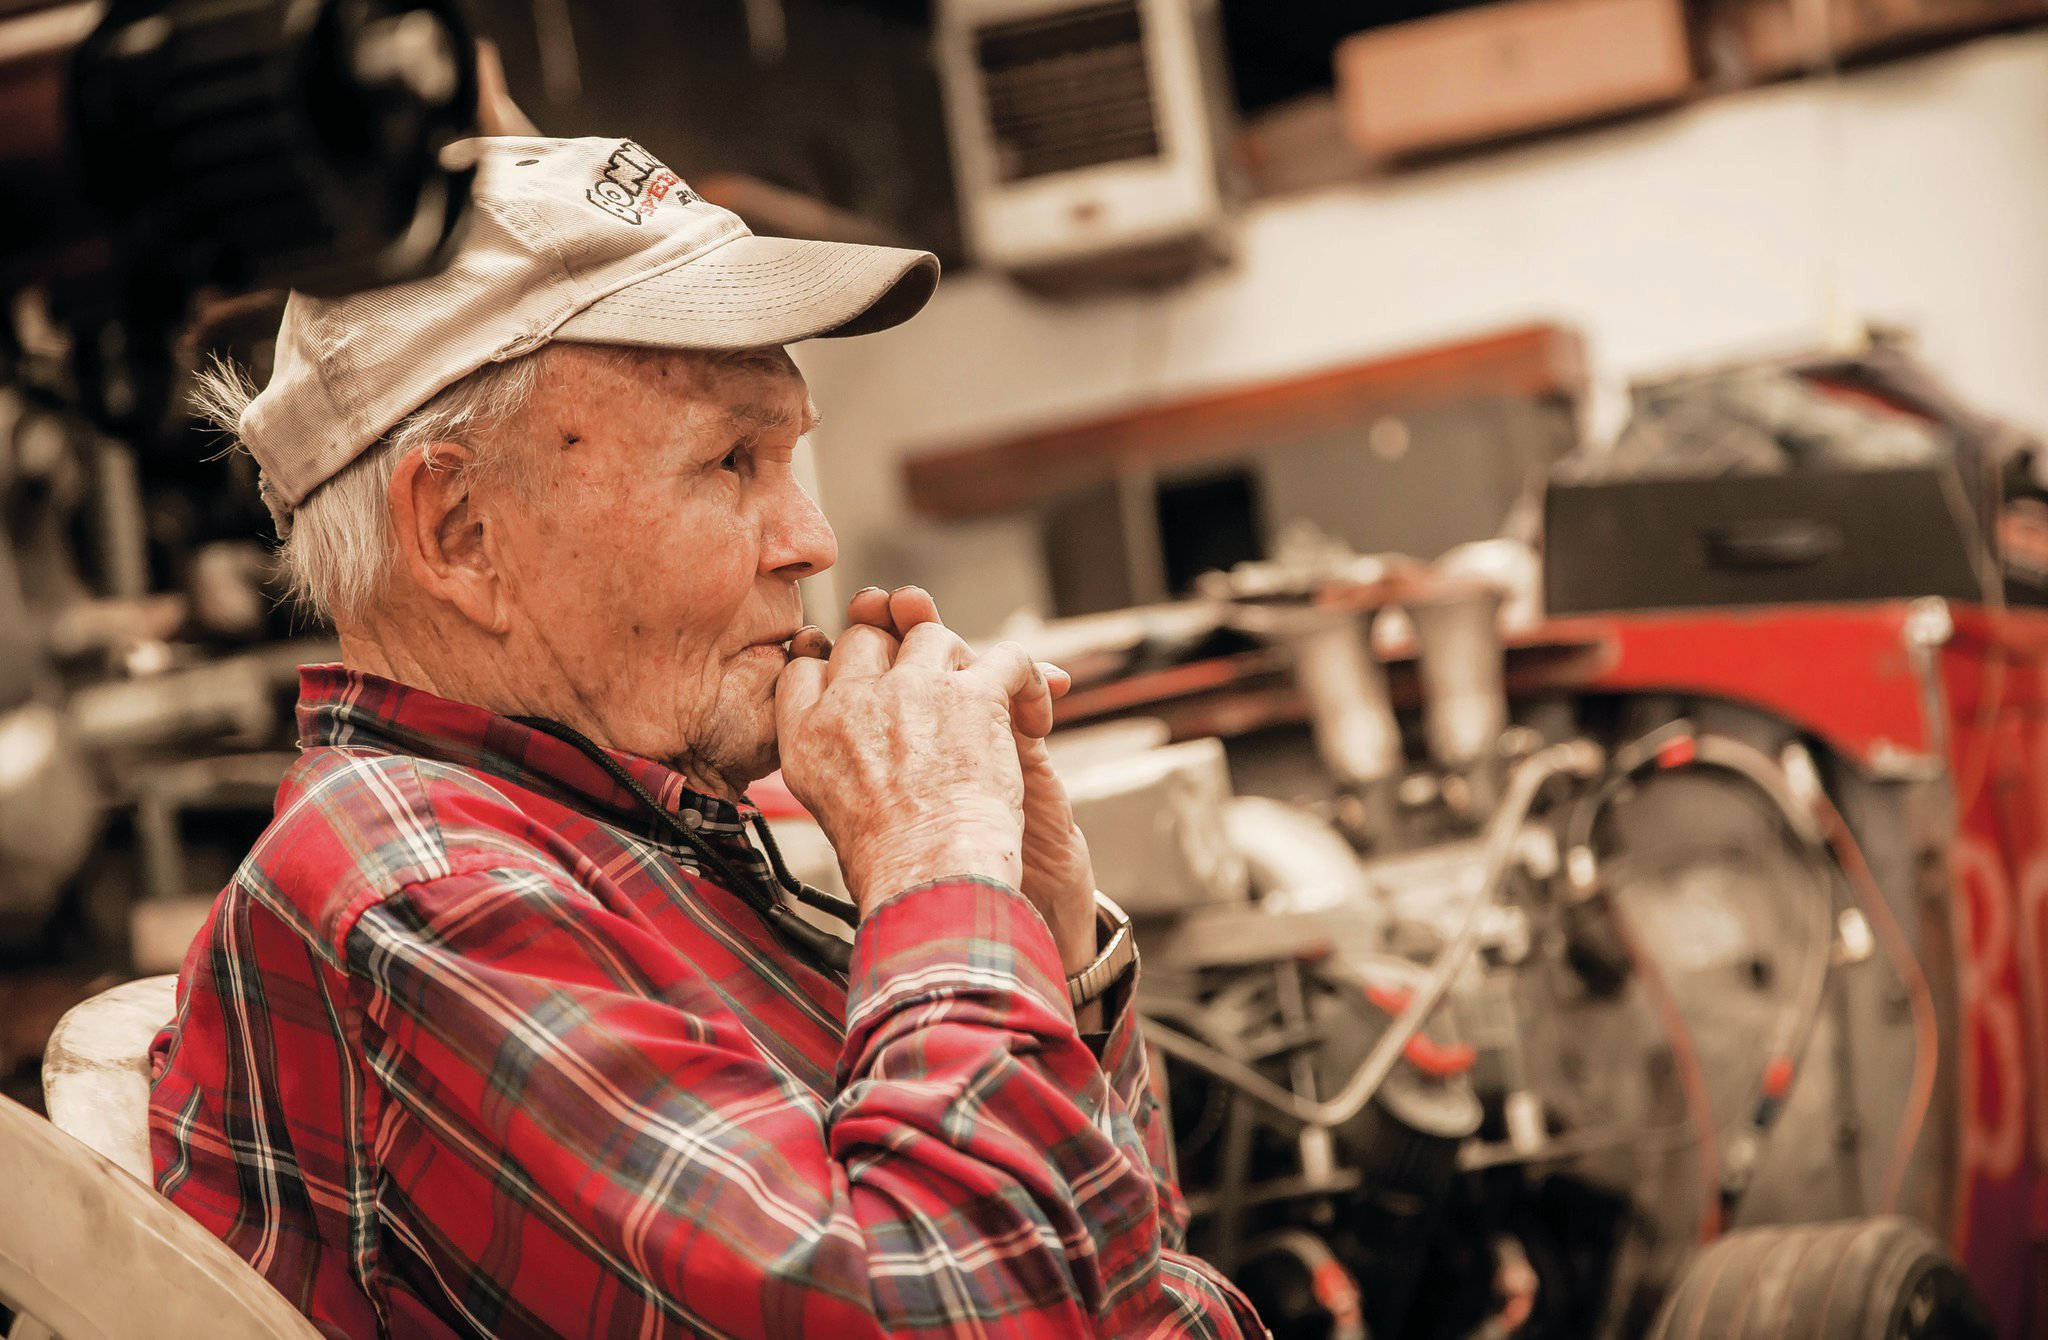 Harold Johansen, 87 years young, at home in his shop.